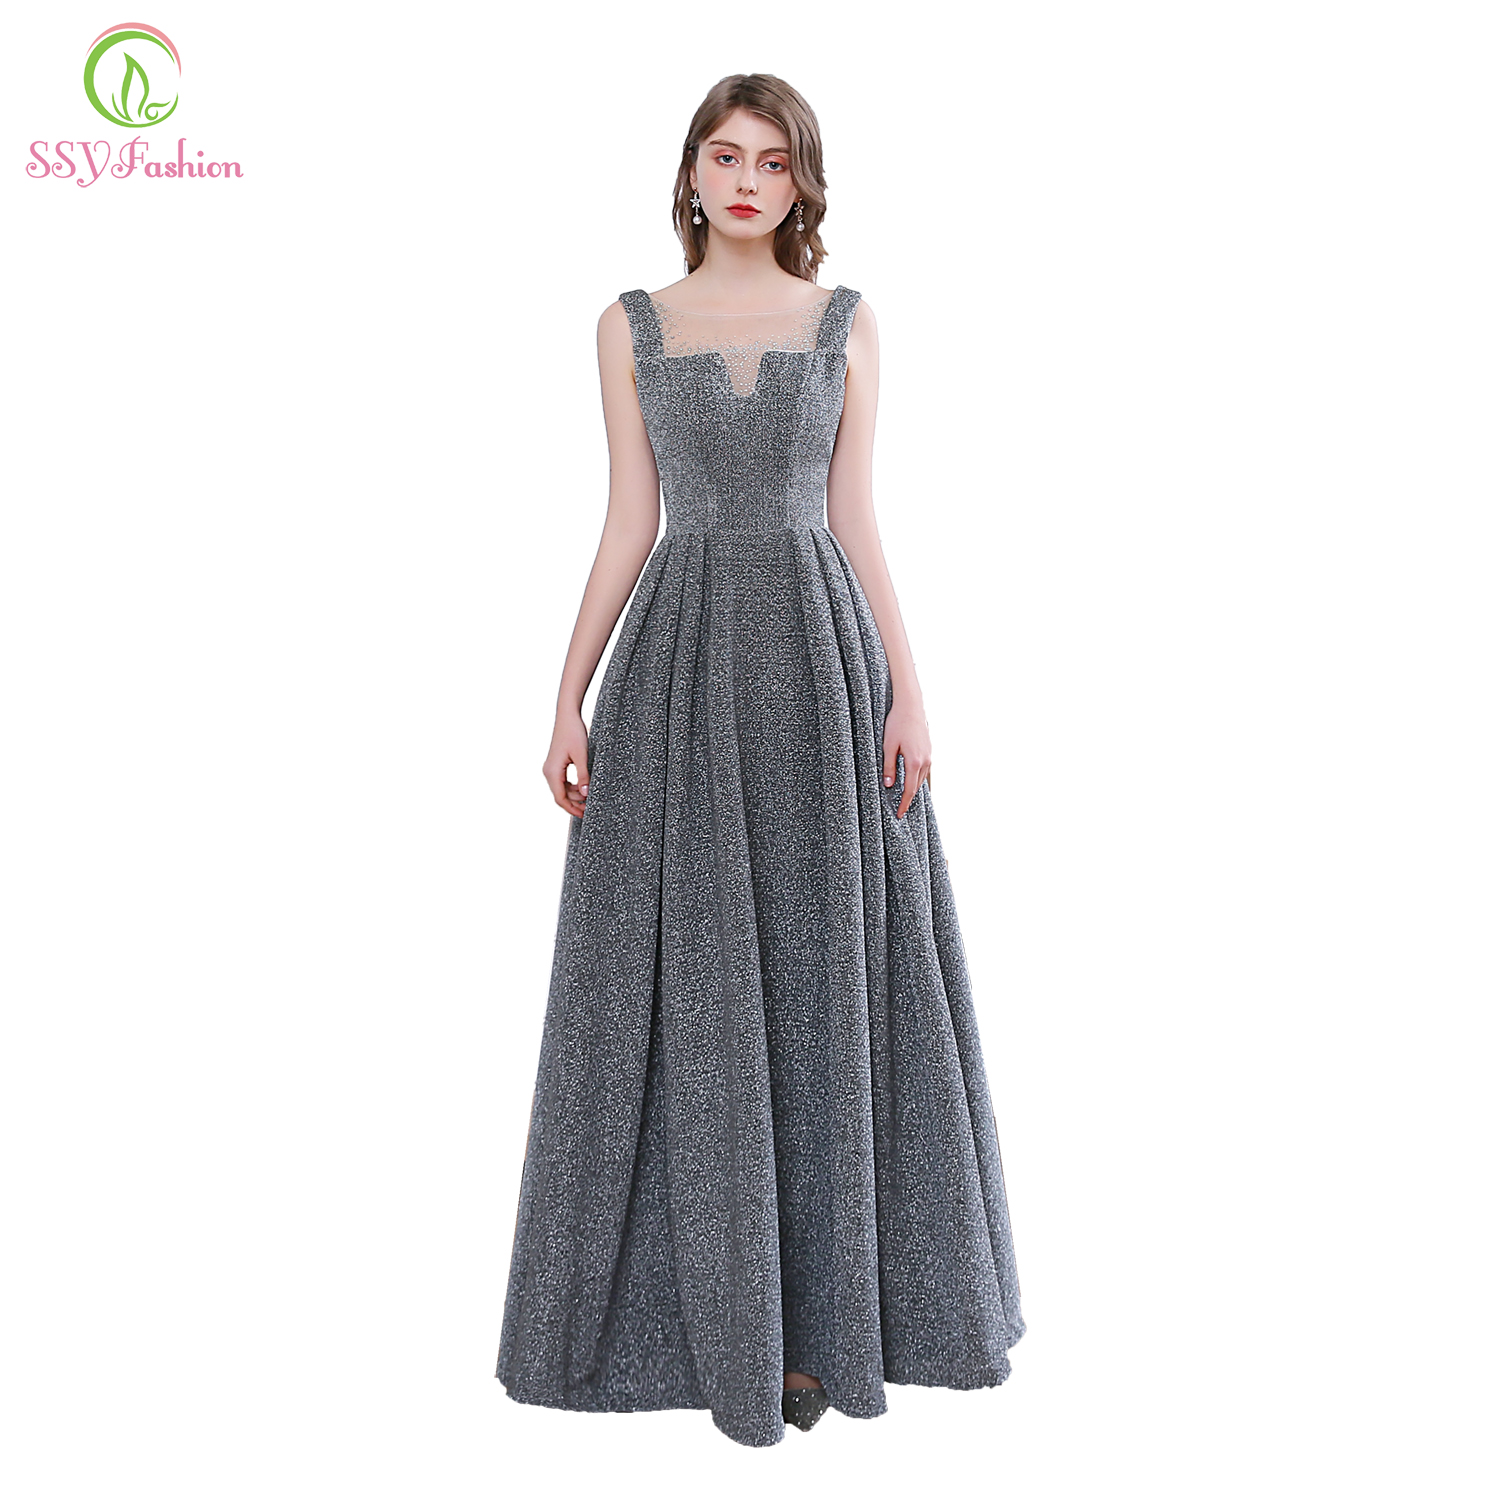 SSYFashion New Simple Grey Evening Dress Sexy Sleeveless Sequins Banquet Sparkling Long Formal Party Gowns Vestidos De Noche